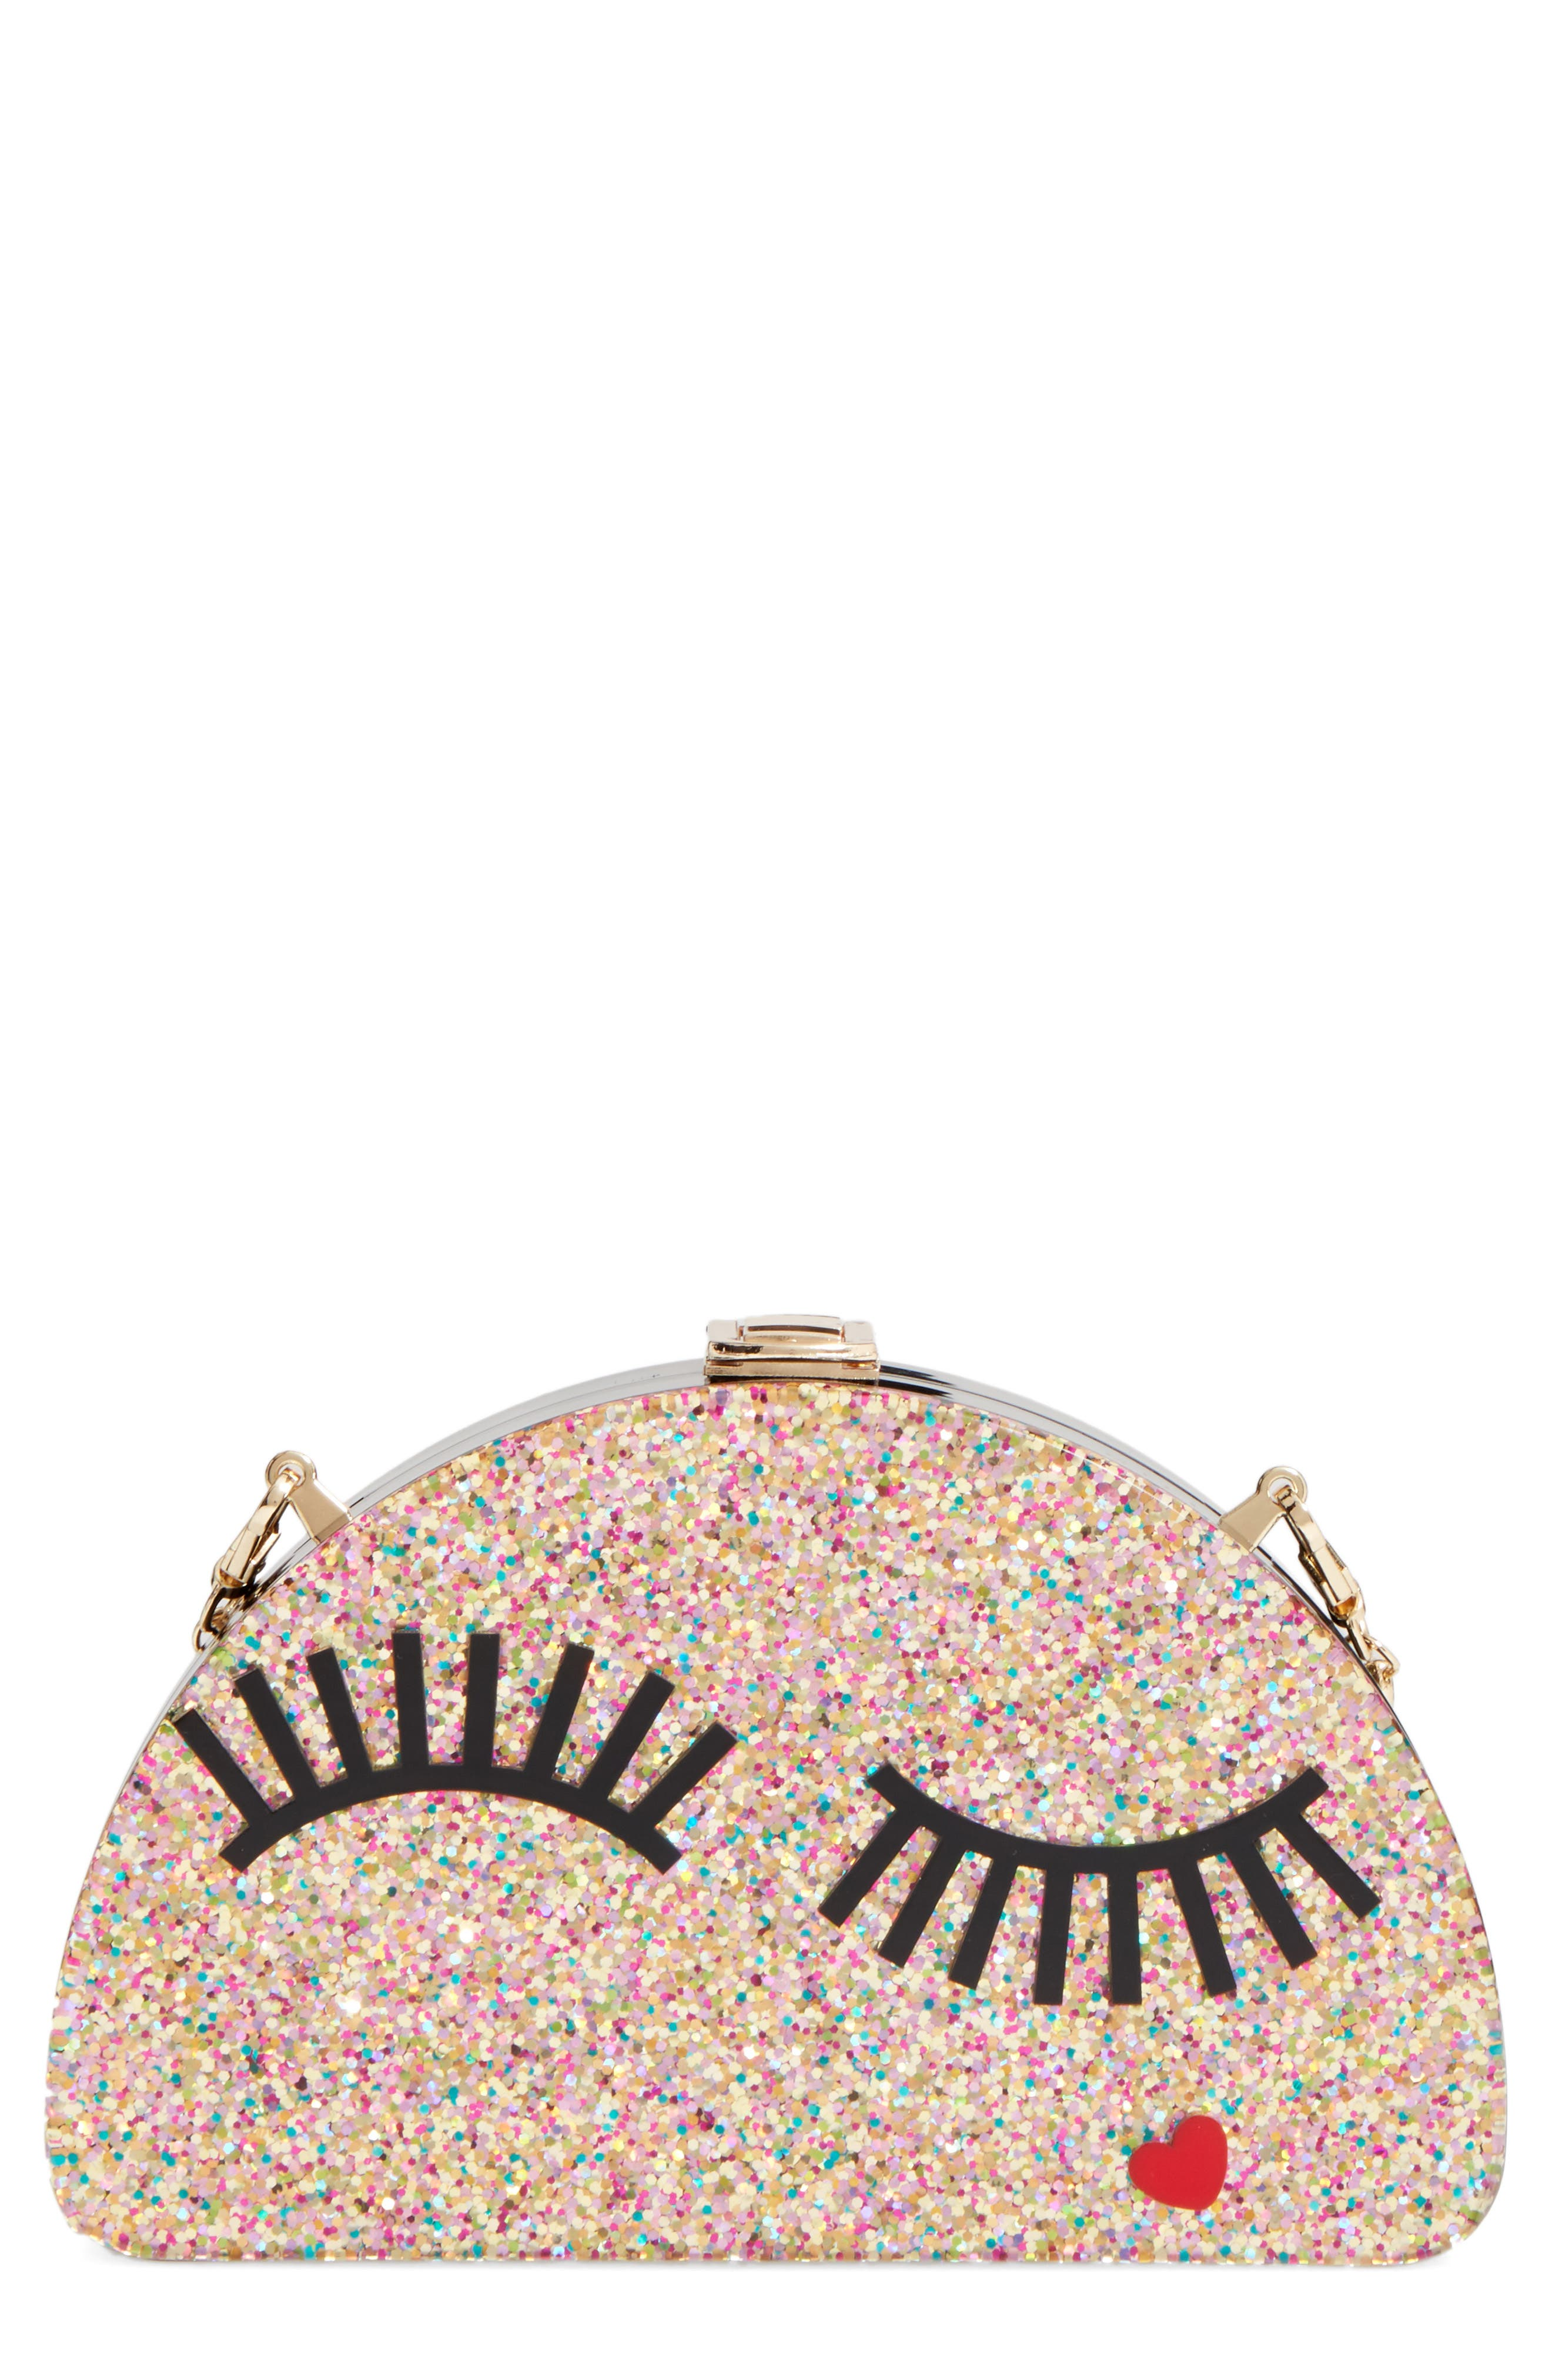 Alternate Image 1 Selected - Milly Eyelash Glitter Half Moon Clutch